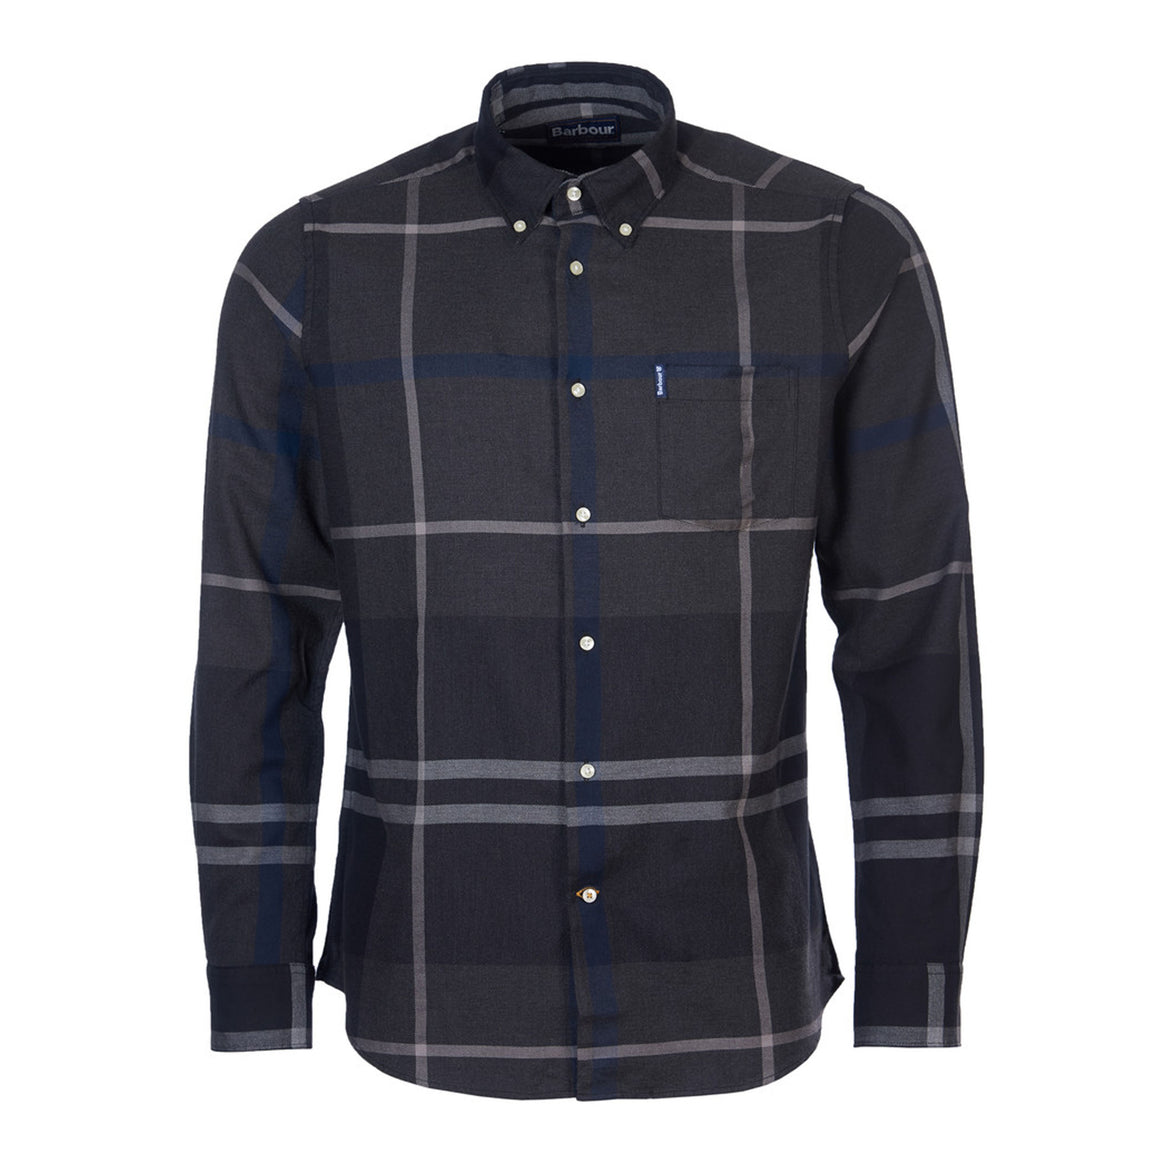 Dunoon Shirt for Men in Graphite